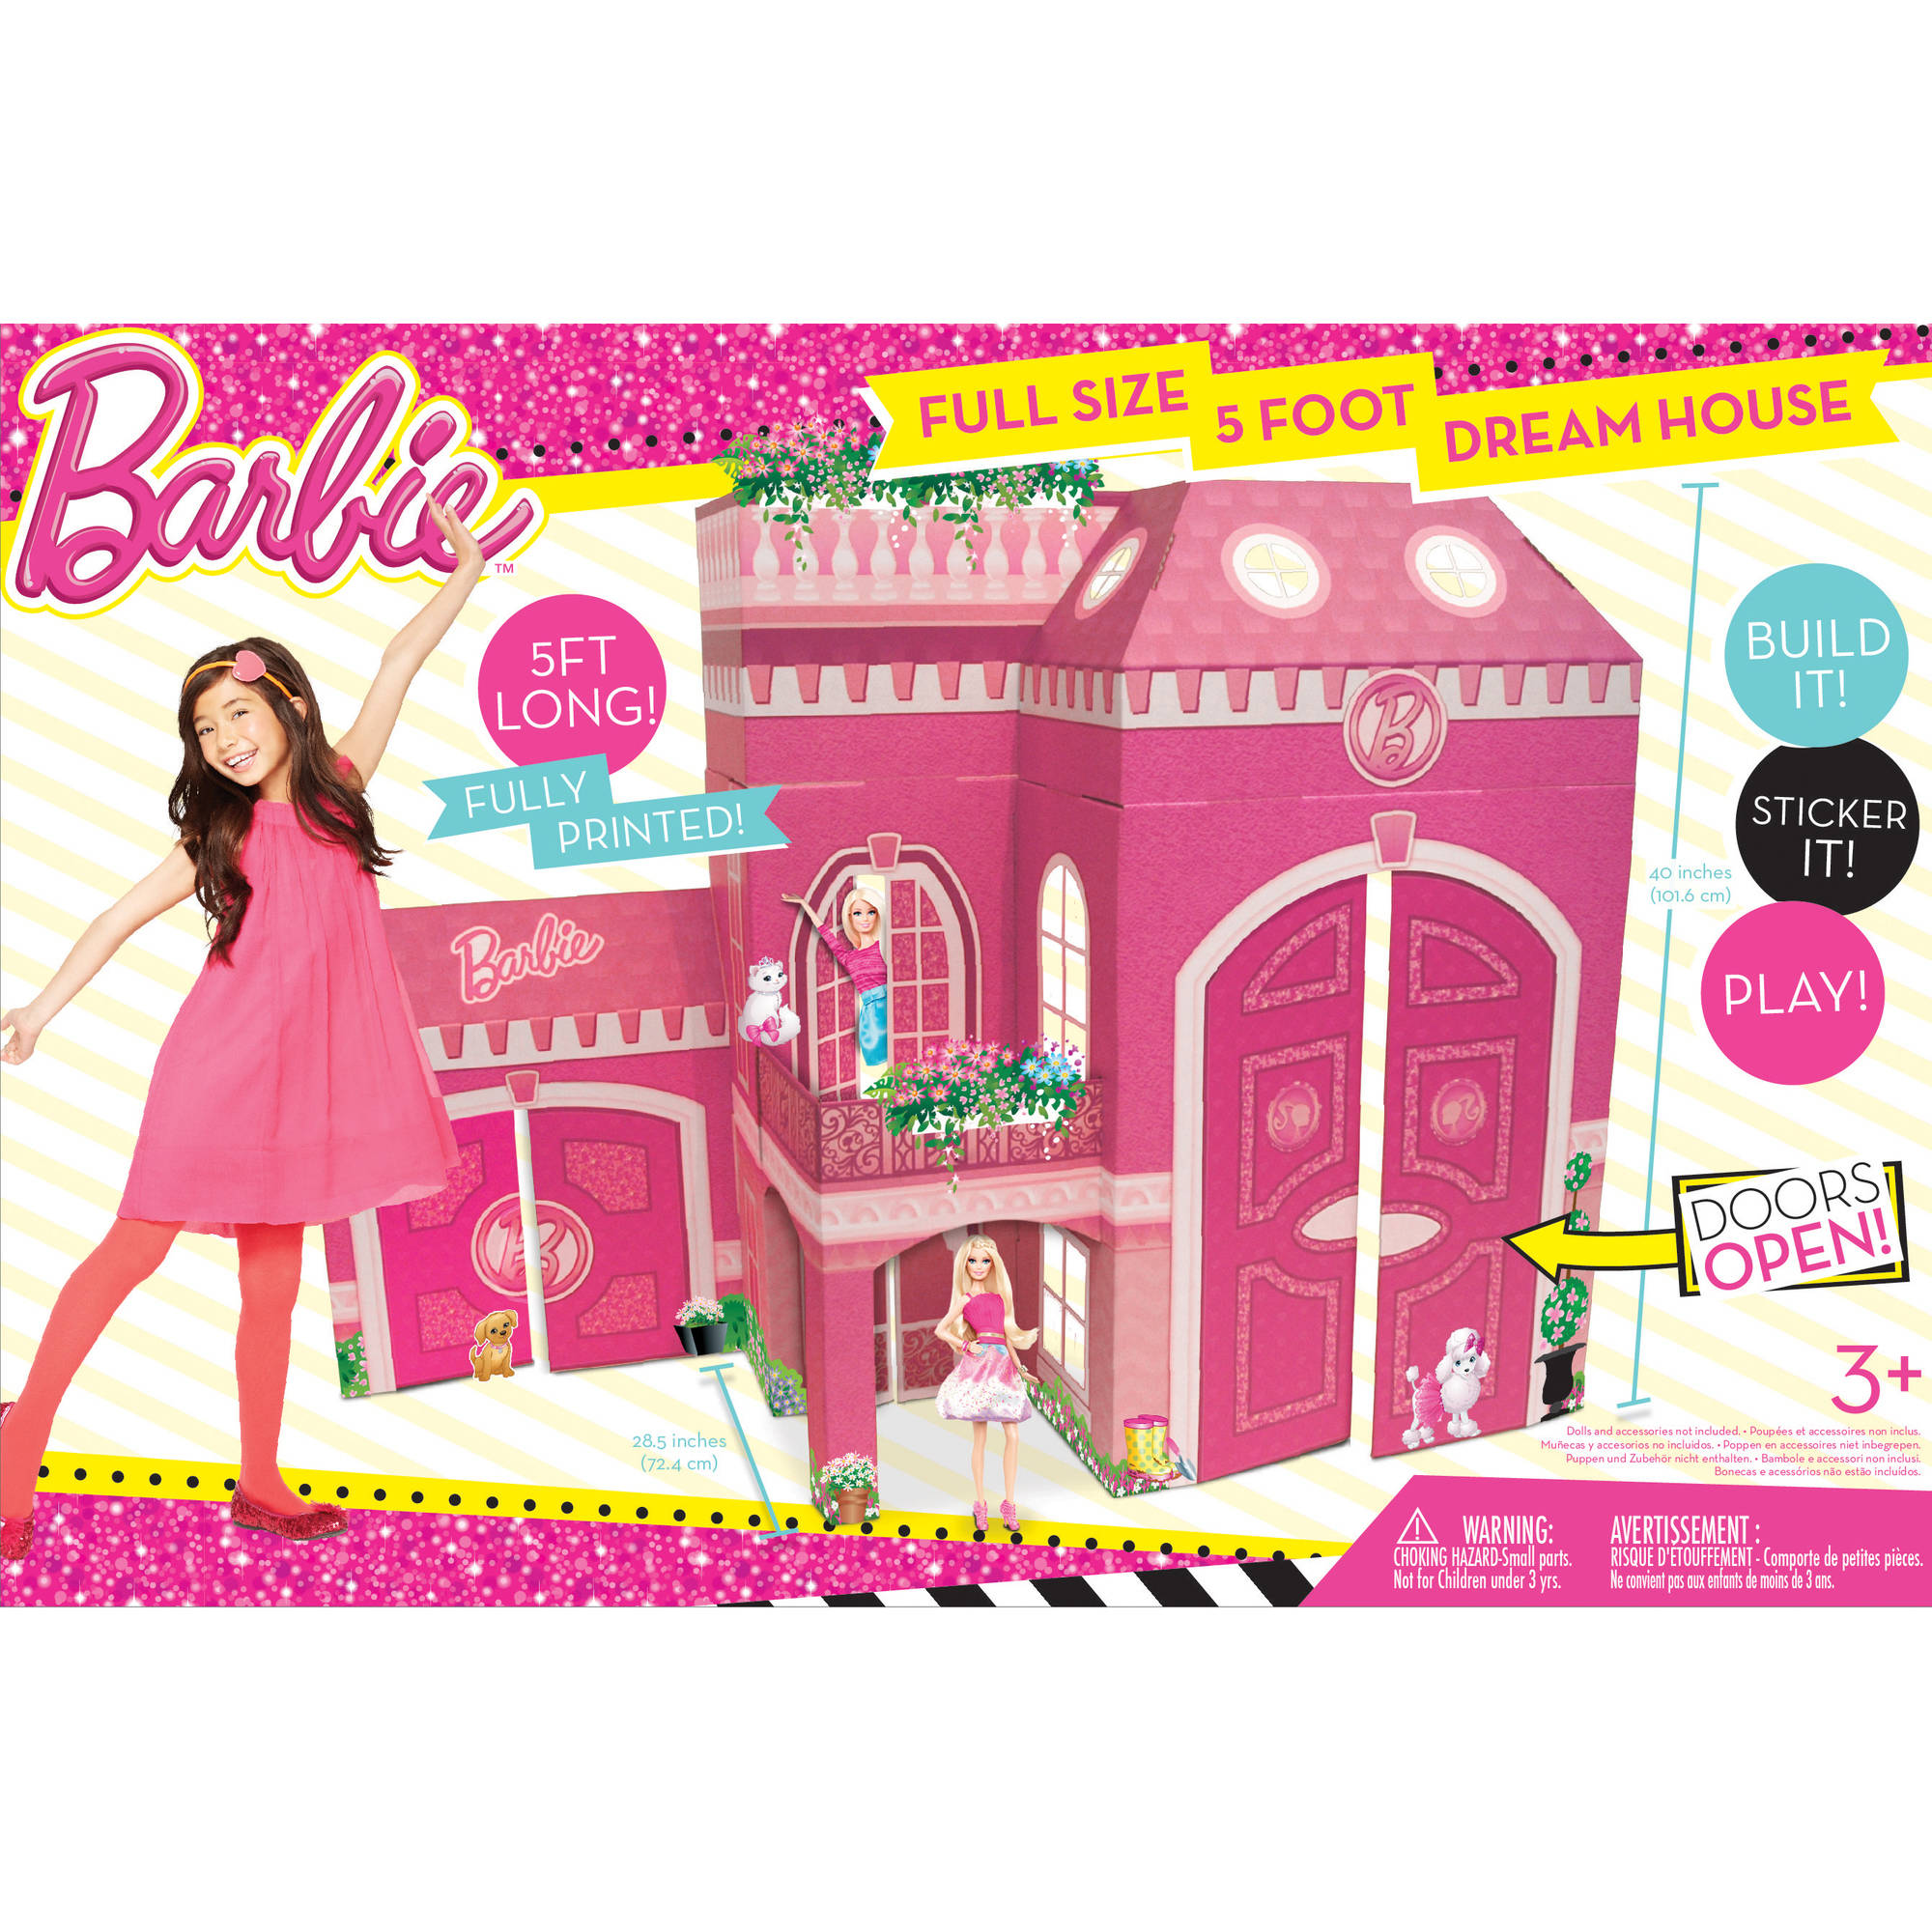 Barbie Dream House Doll House Neat Oh Full Size 5 Foot Play